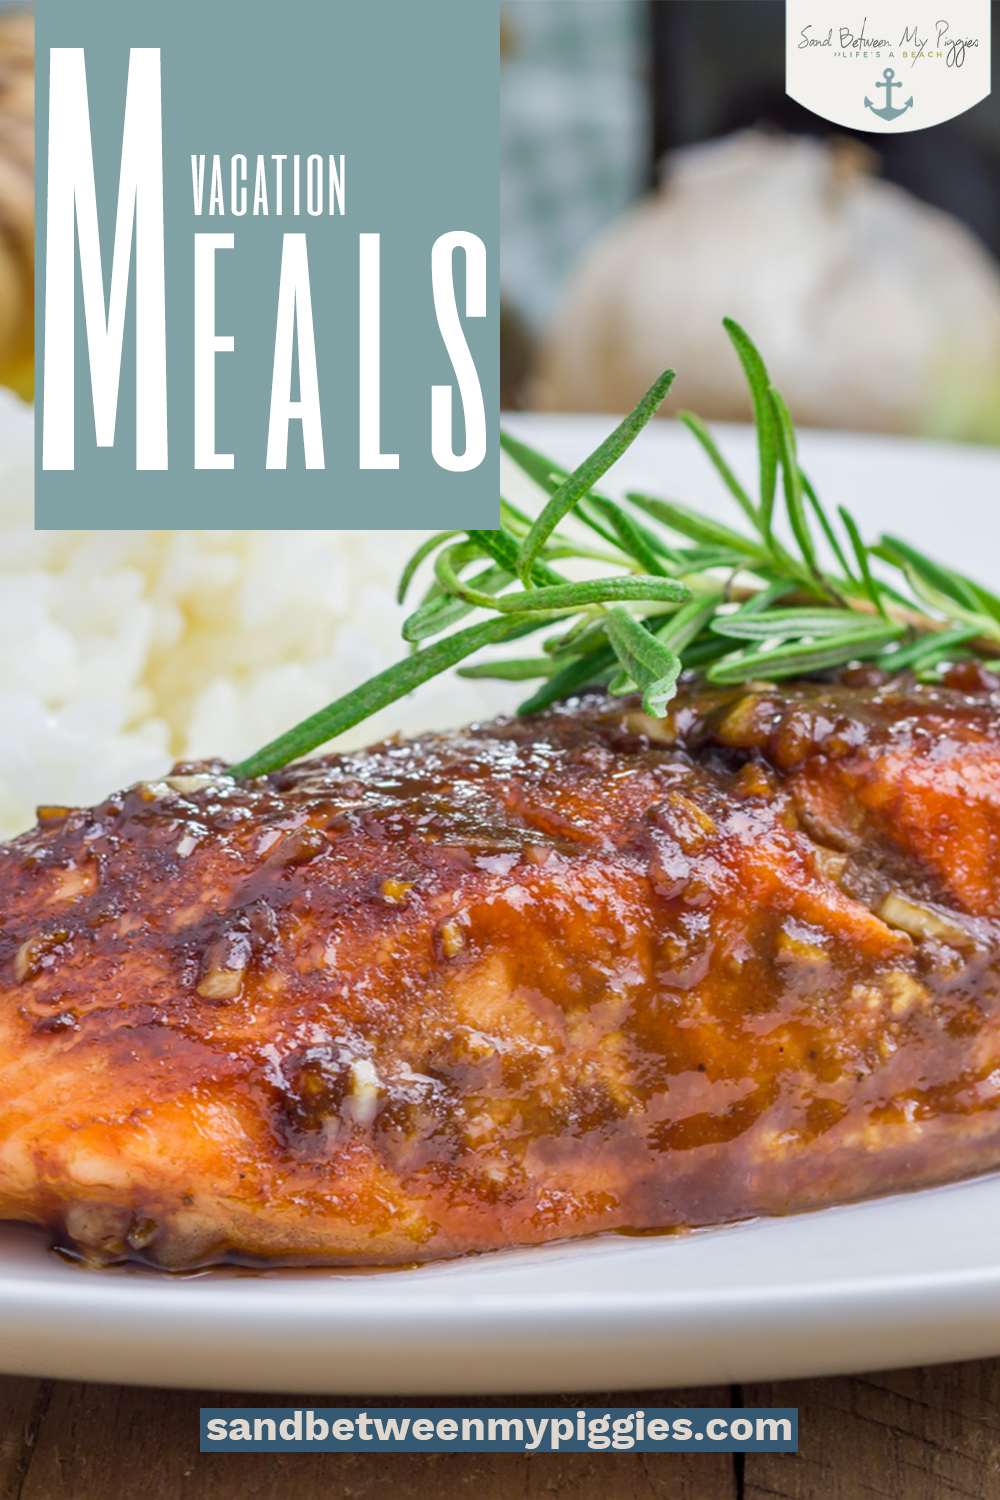 The best part about vacationing is all of the good food, but it can be expensive to eat out. Fortunately, this list of easy vacation meals that take practically no time at all will keep your bellies fed fast so you can go back to relaxation. #vacationmeals #sandbetweenmypiggiesblog #food